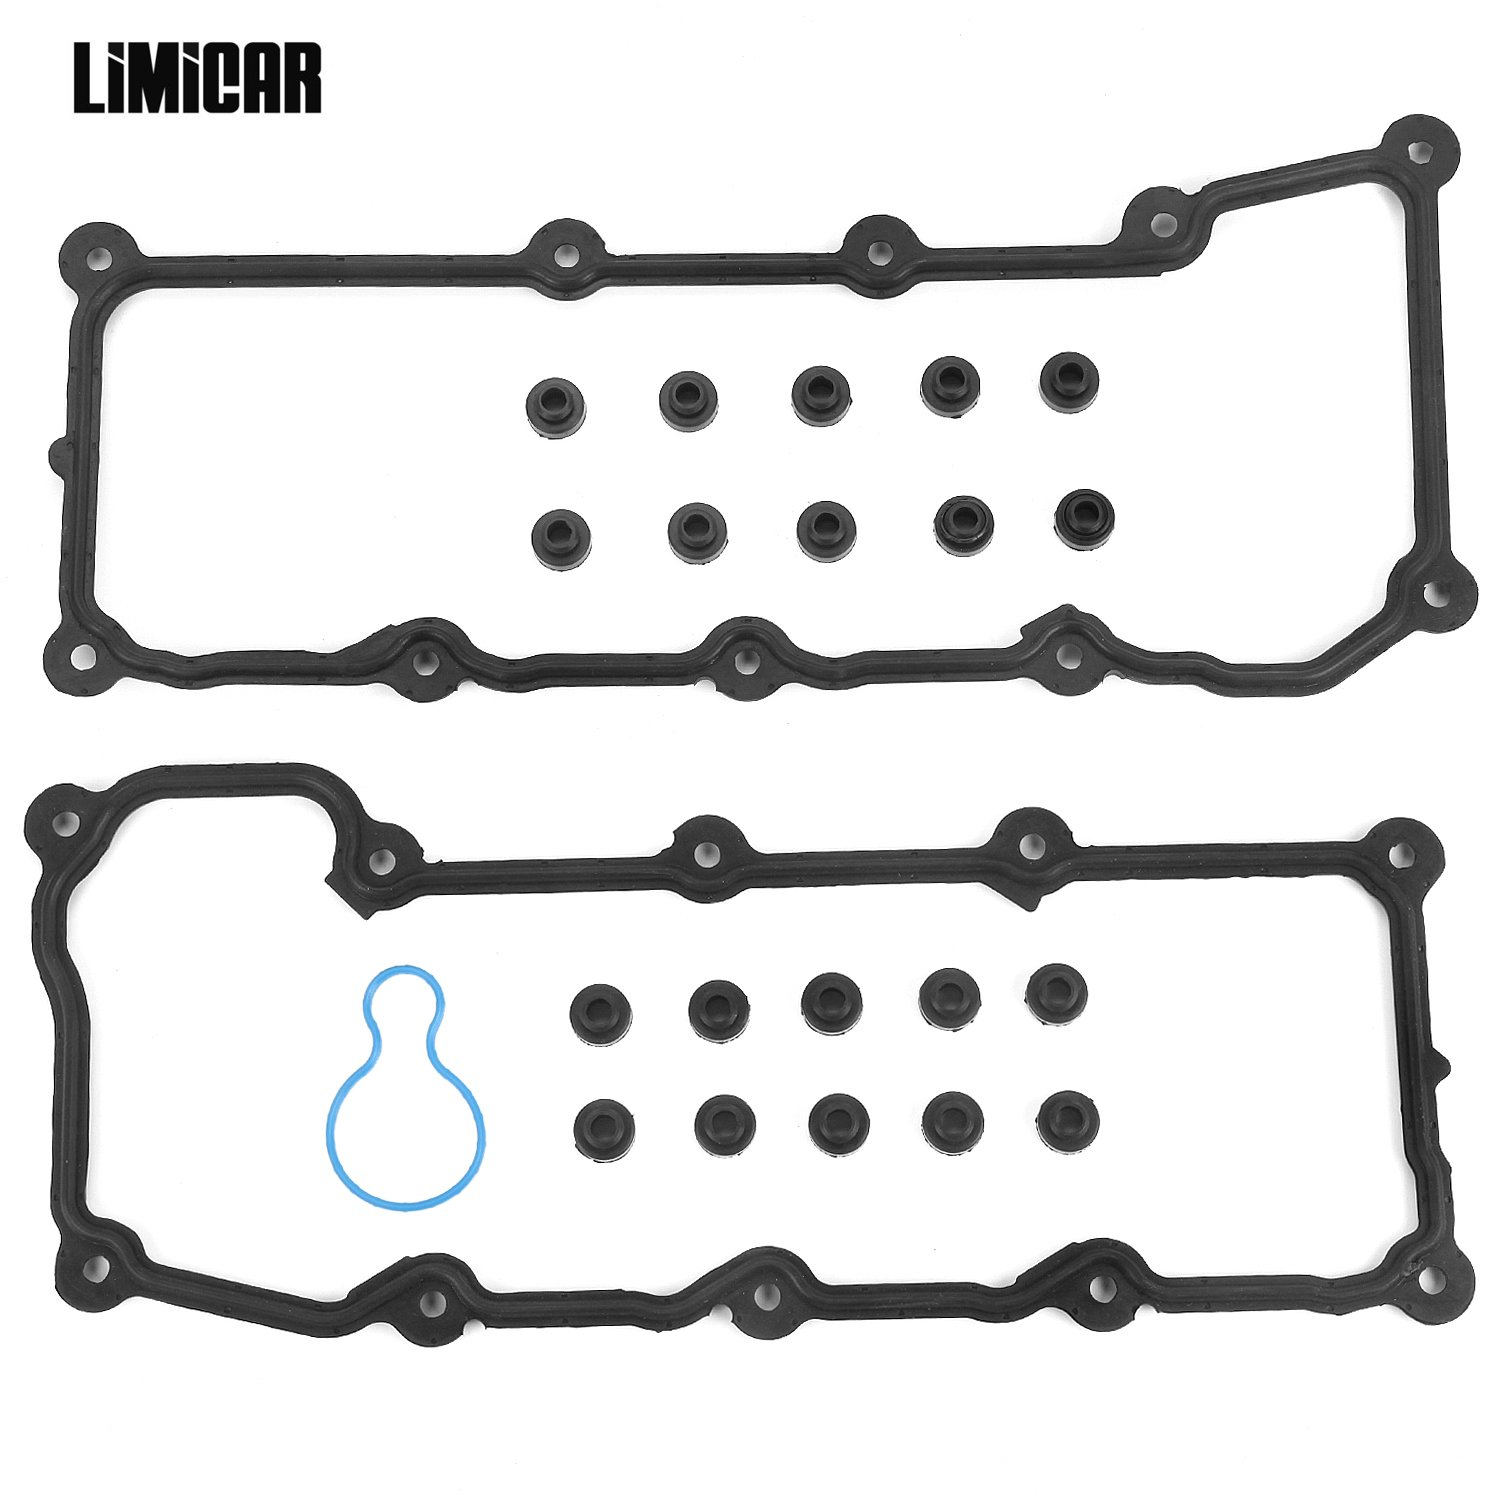 LIMICAR Cylinder Valve Cover Gasket For 2004-2005 Dodge Dakota Durango 2005 Dodge Ram 1500 Jeep Grand Cherokee 2002-2005 Jeep Liberty 3.7L V6 SOHC 12V Vin K VC50594R VC30300